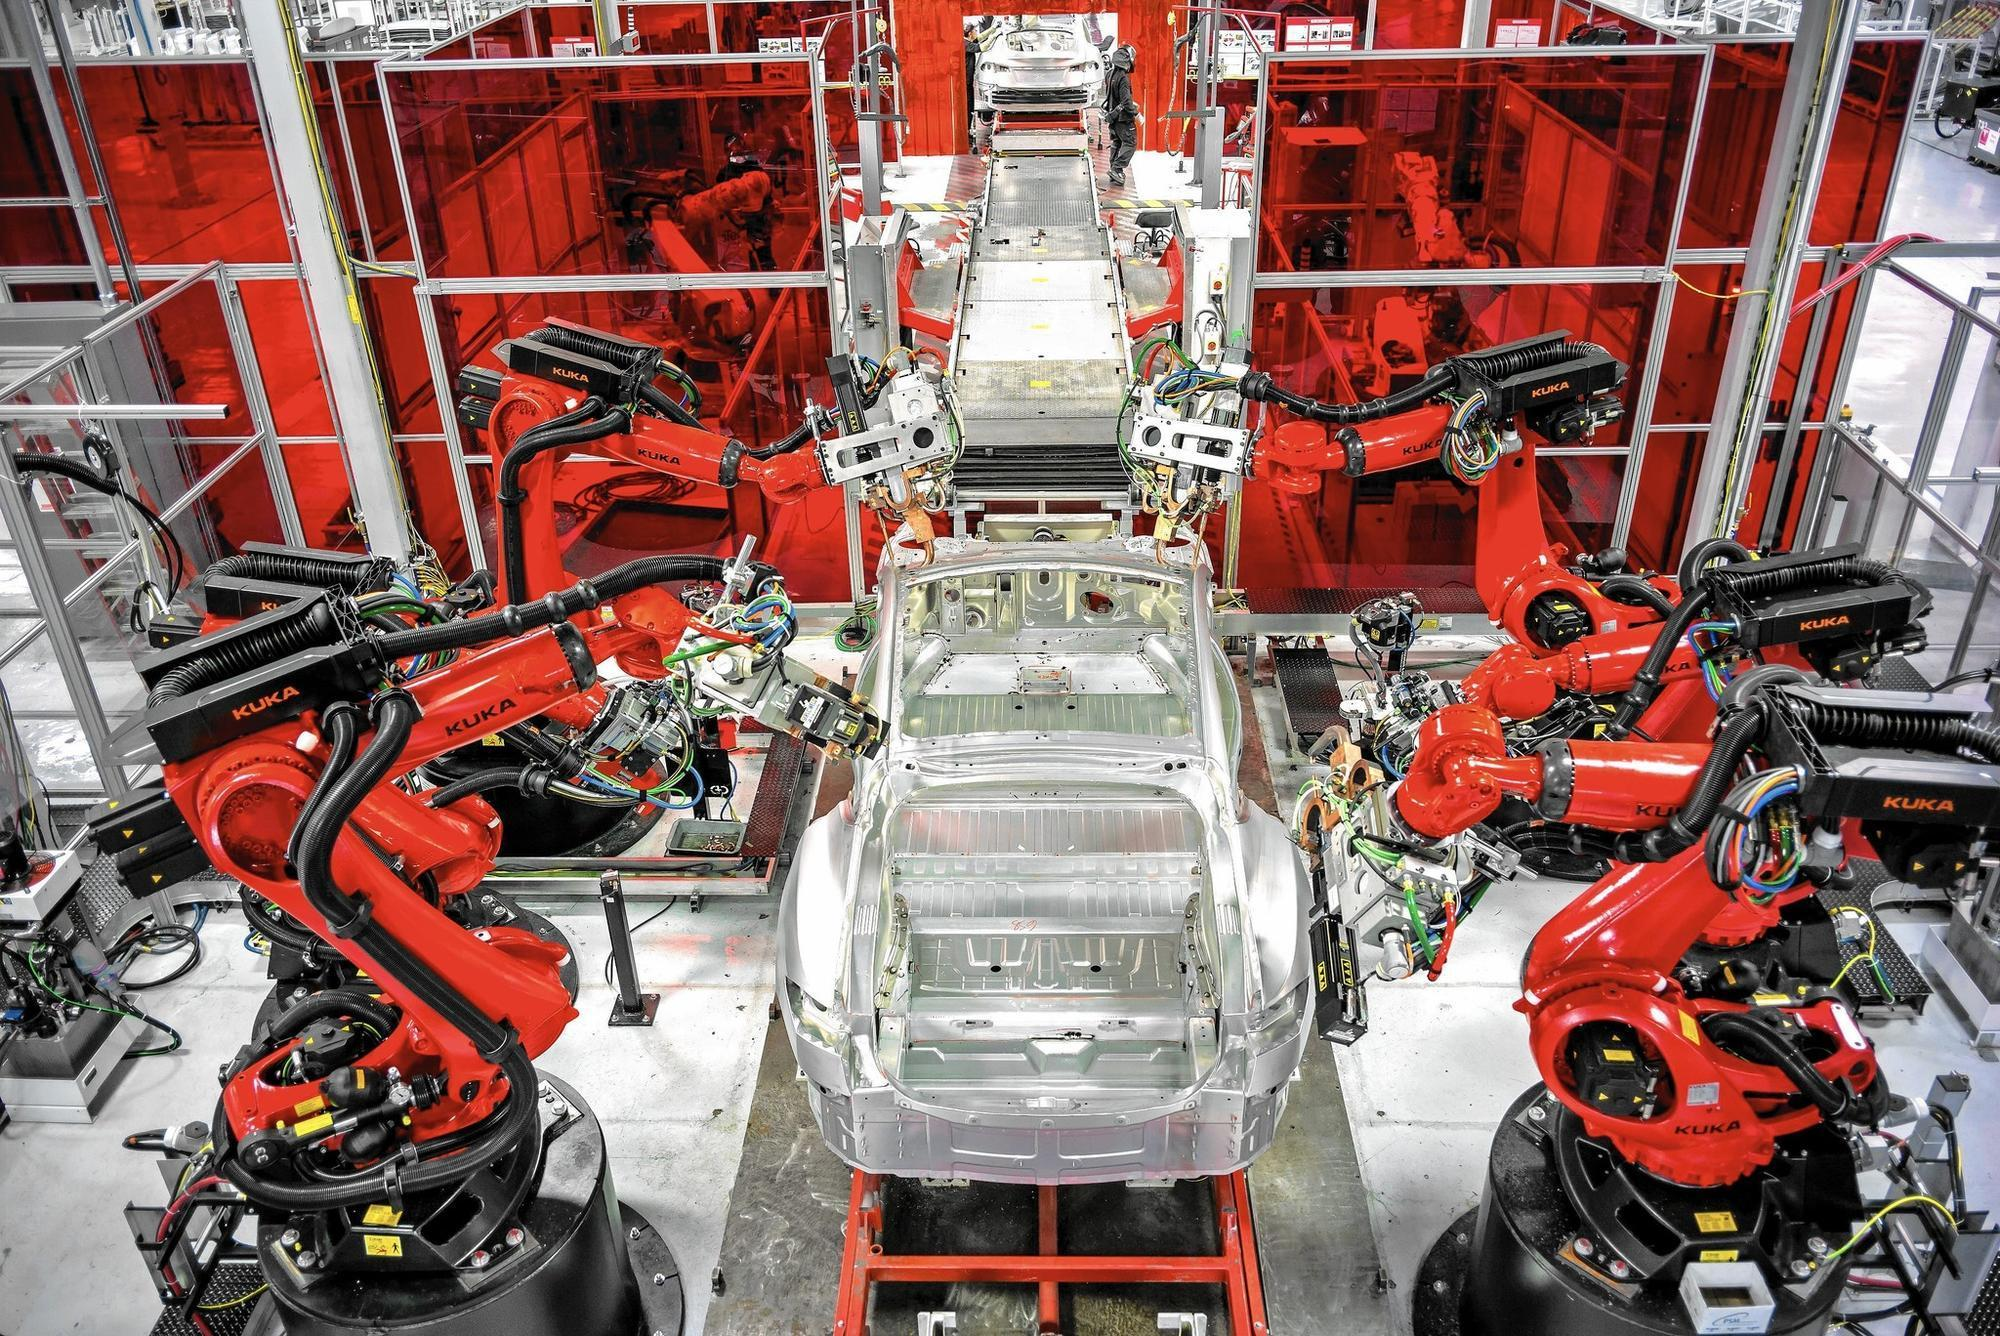 Tesla reportedly reaches agreement to build car factory in Shanghai